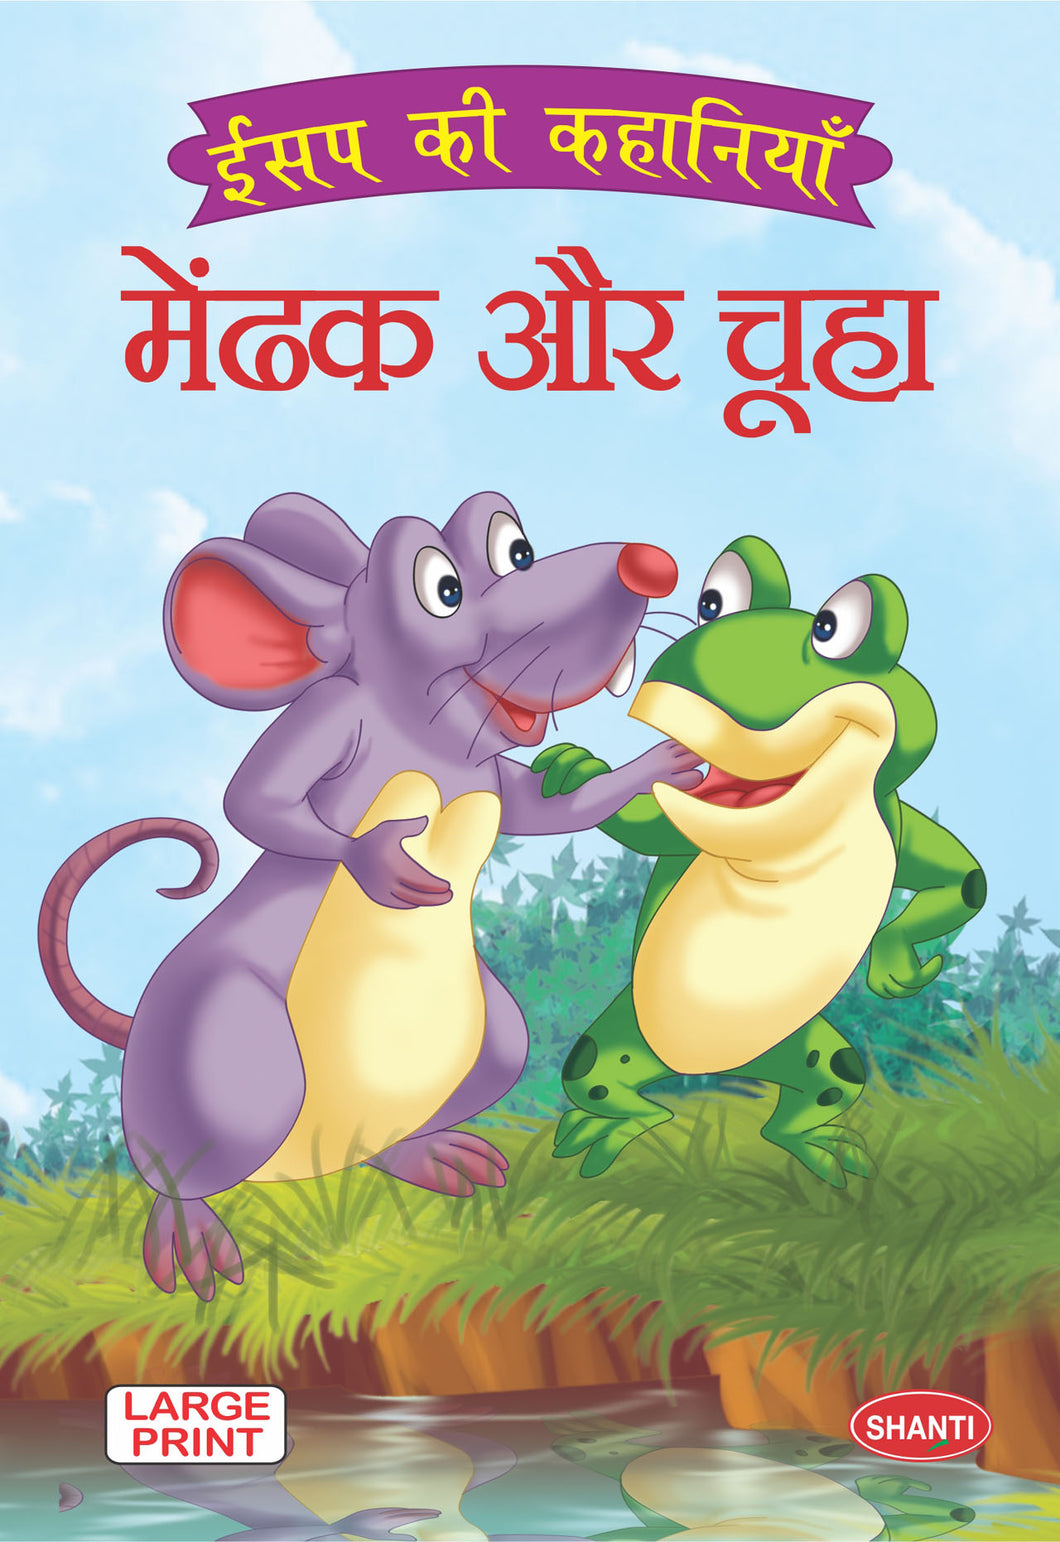 Aesop Fables for children-Aesop Fables (Hindi) - Mendhak aur Chuha